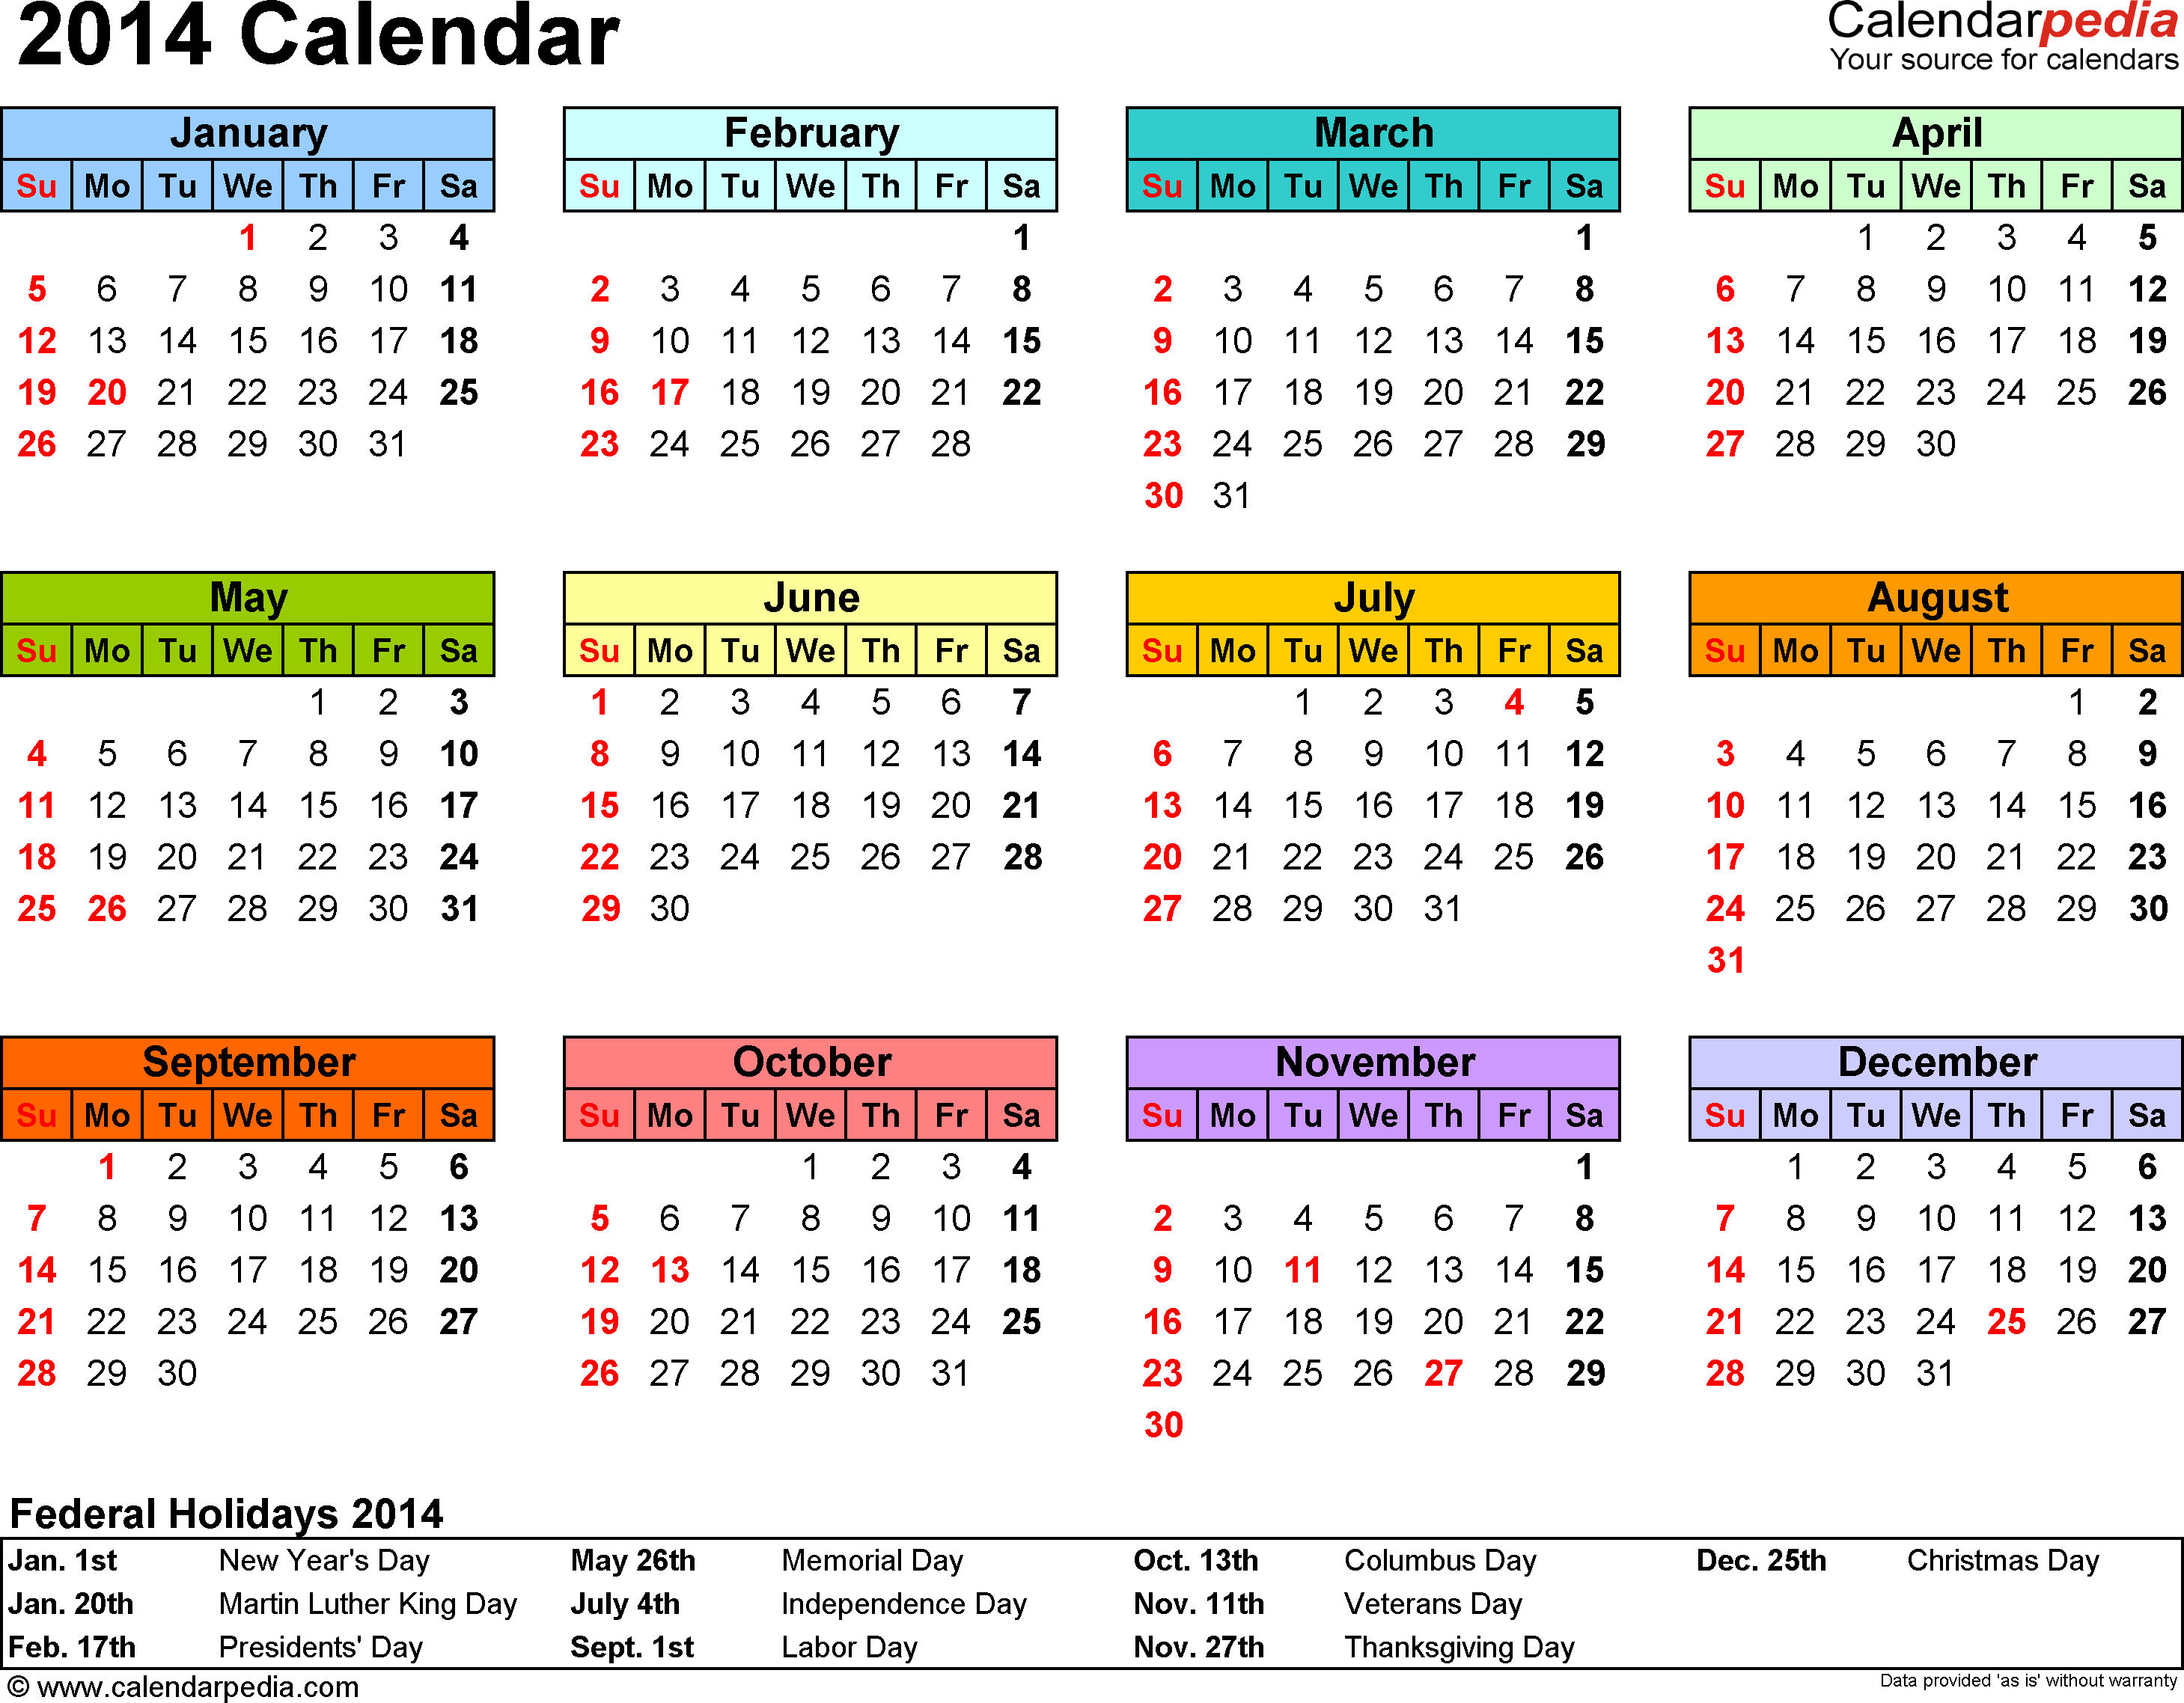 Download Template 7: 2014 Calendar for PDF, year at a glance, 1 page, multi-colored